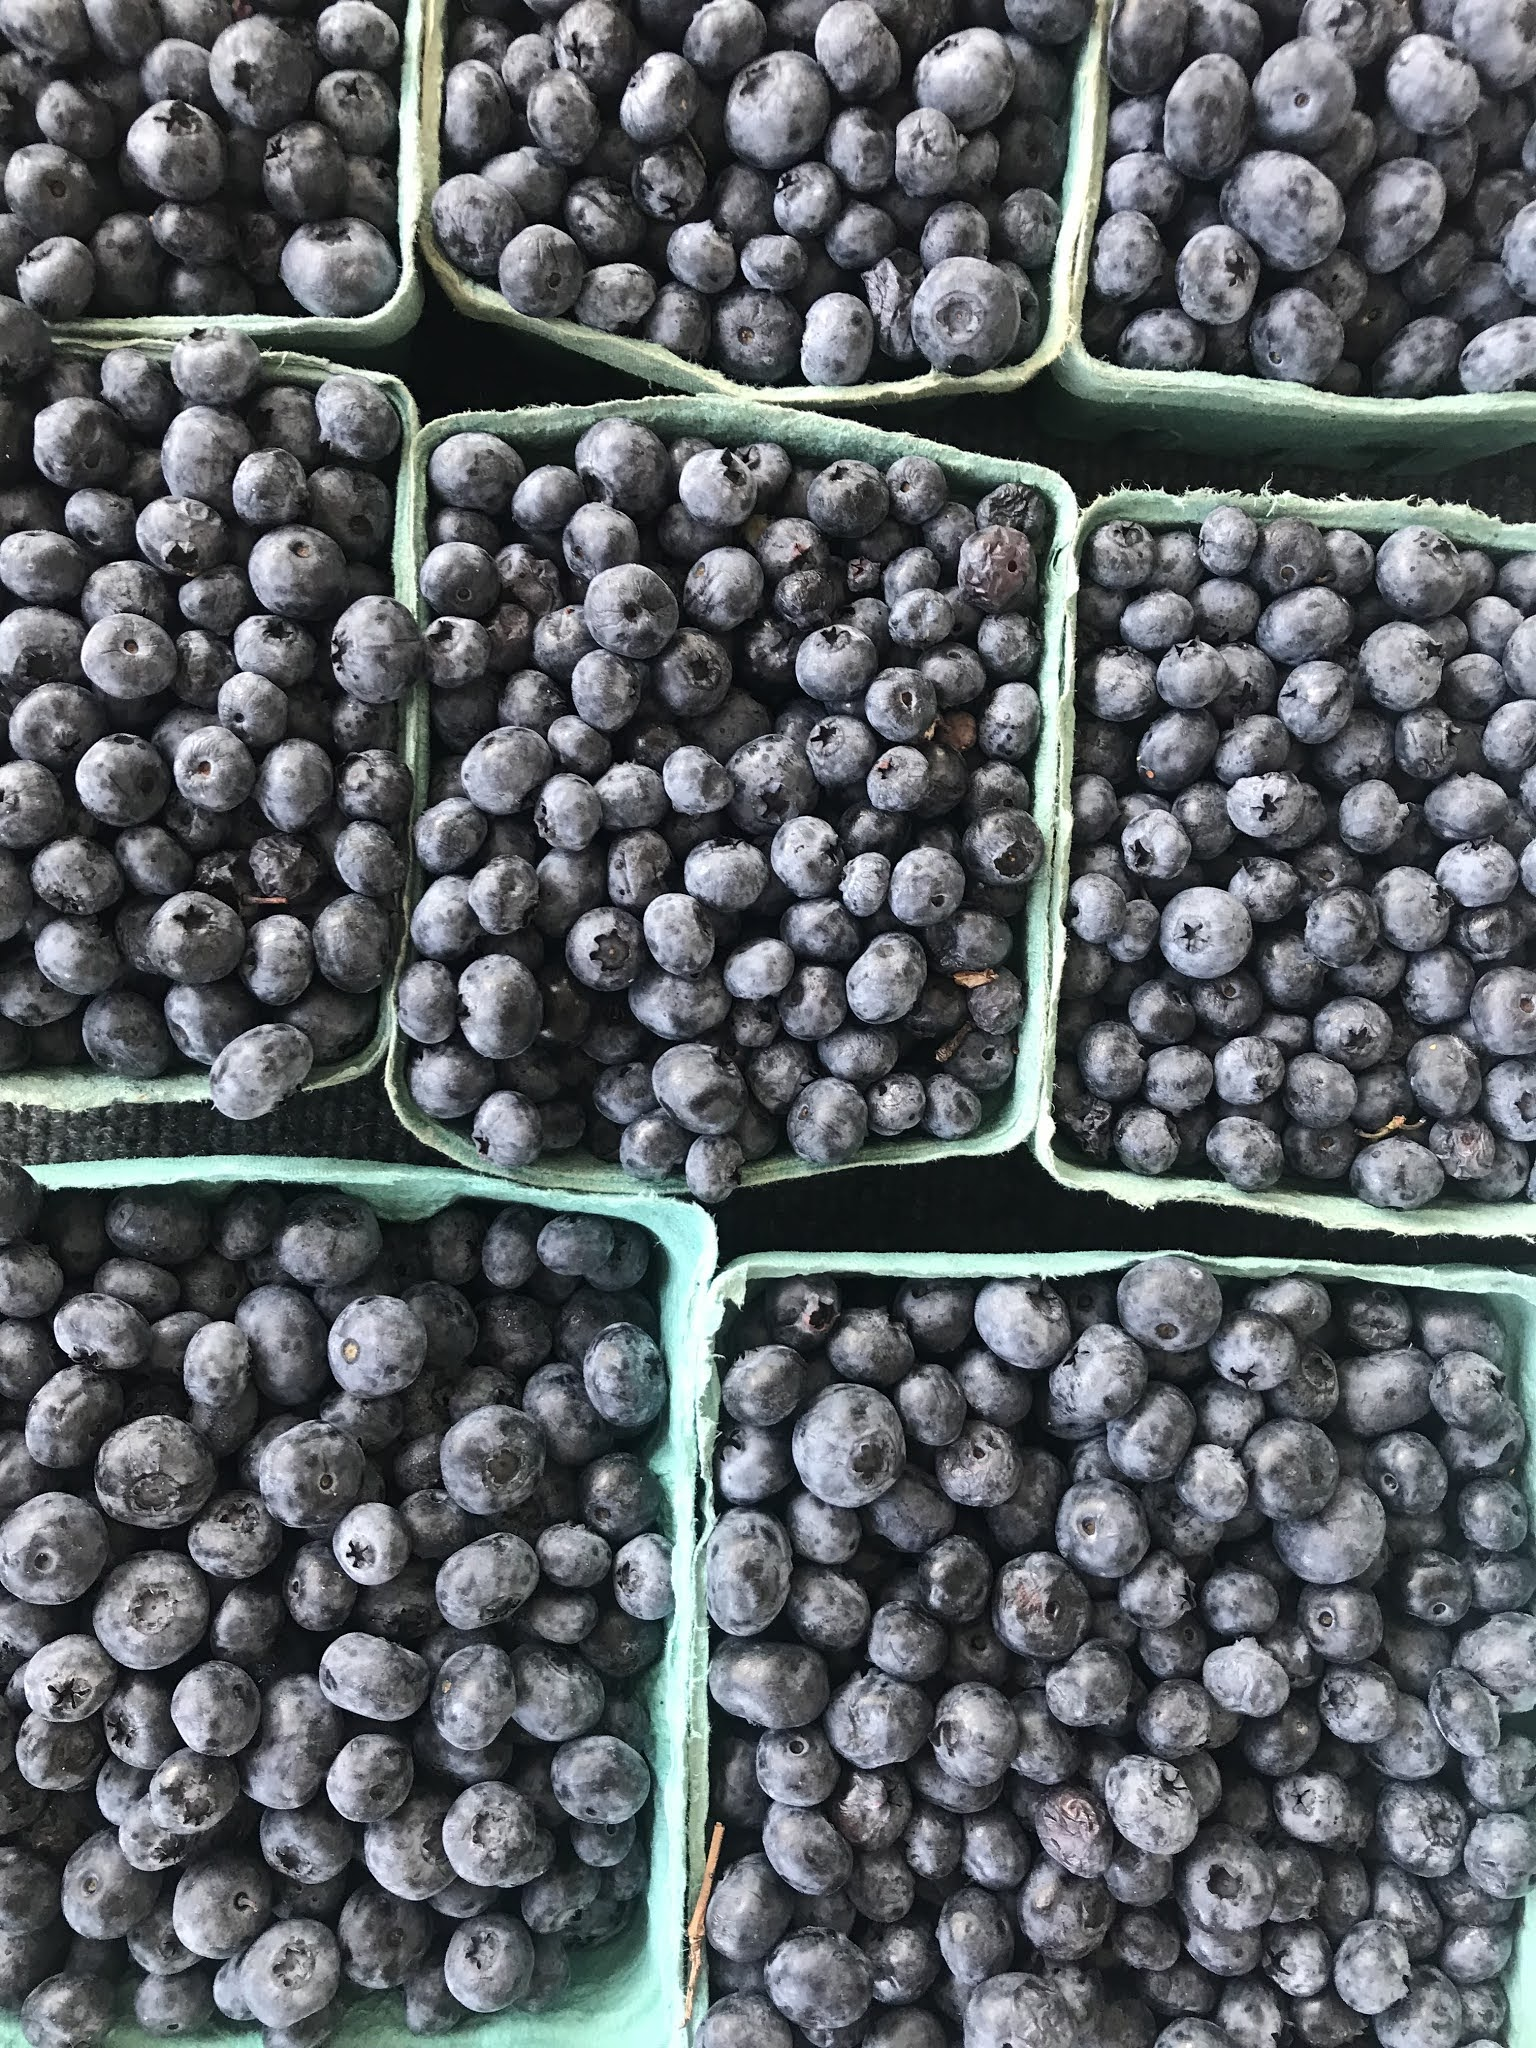 Farmers Market Blueberries | biblio-style.com